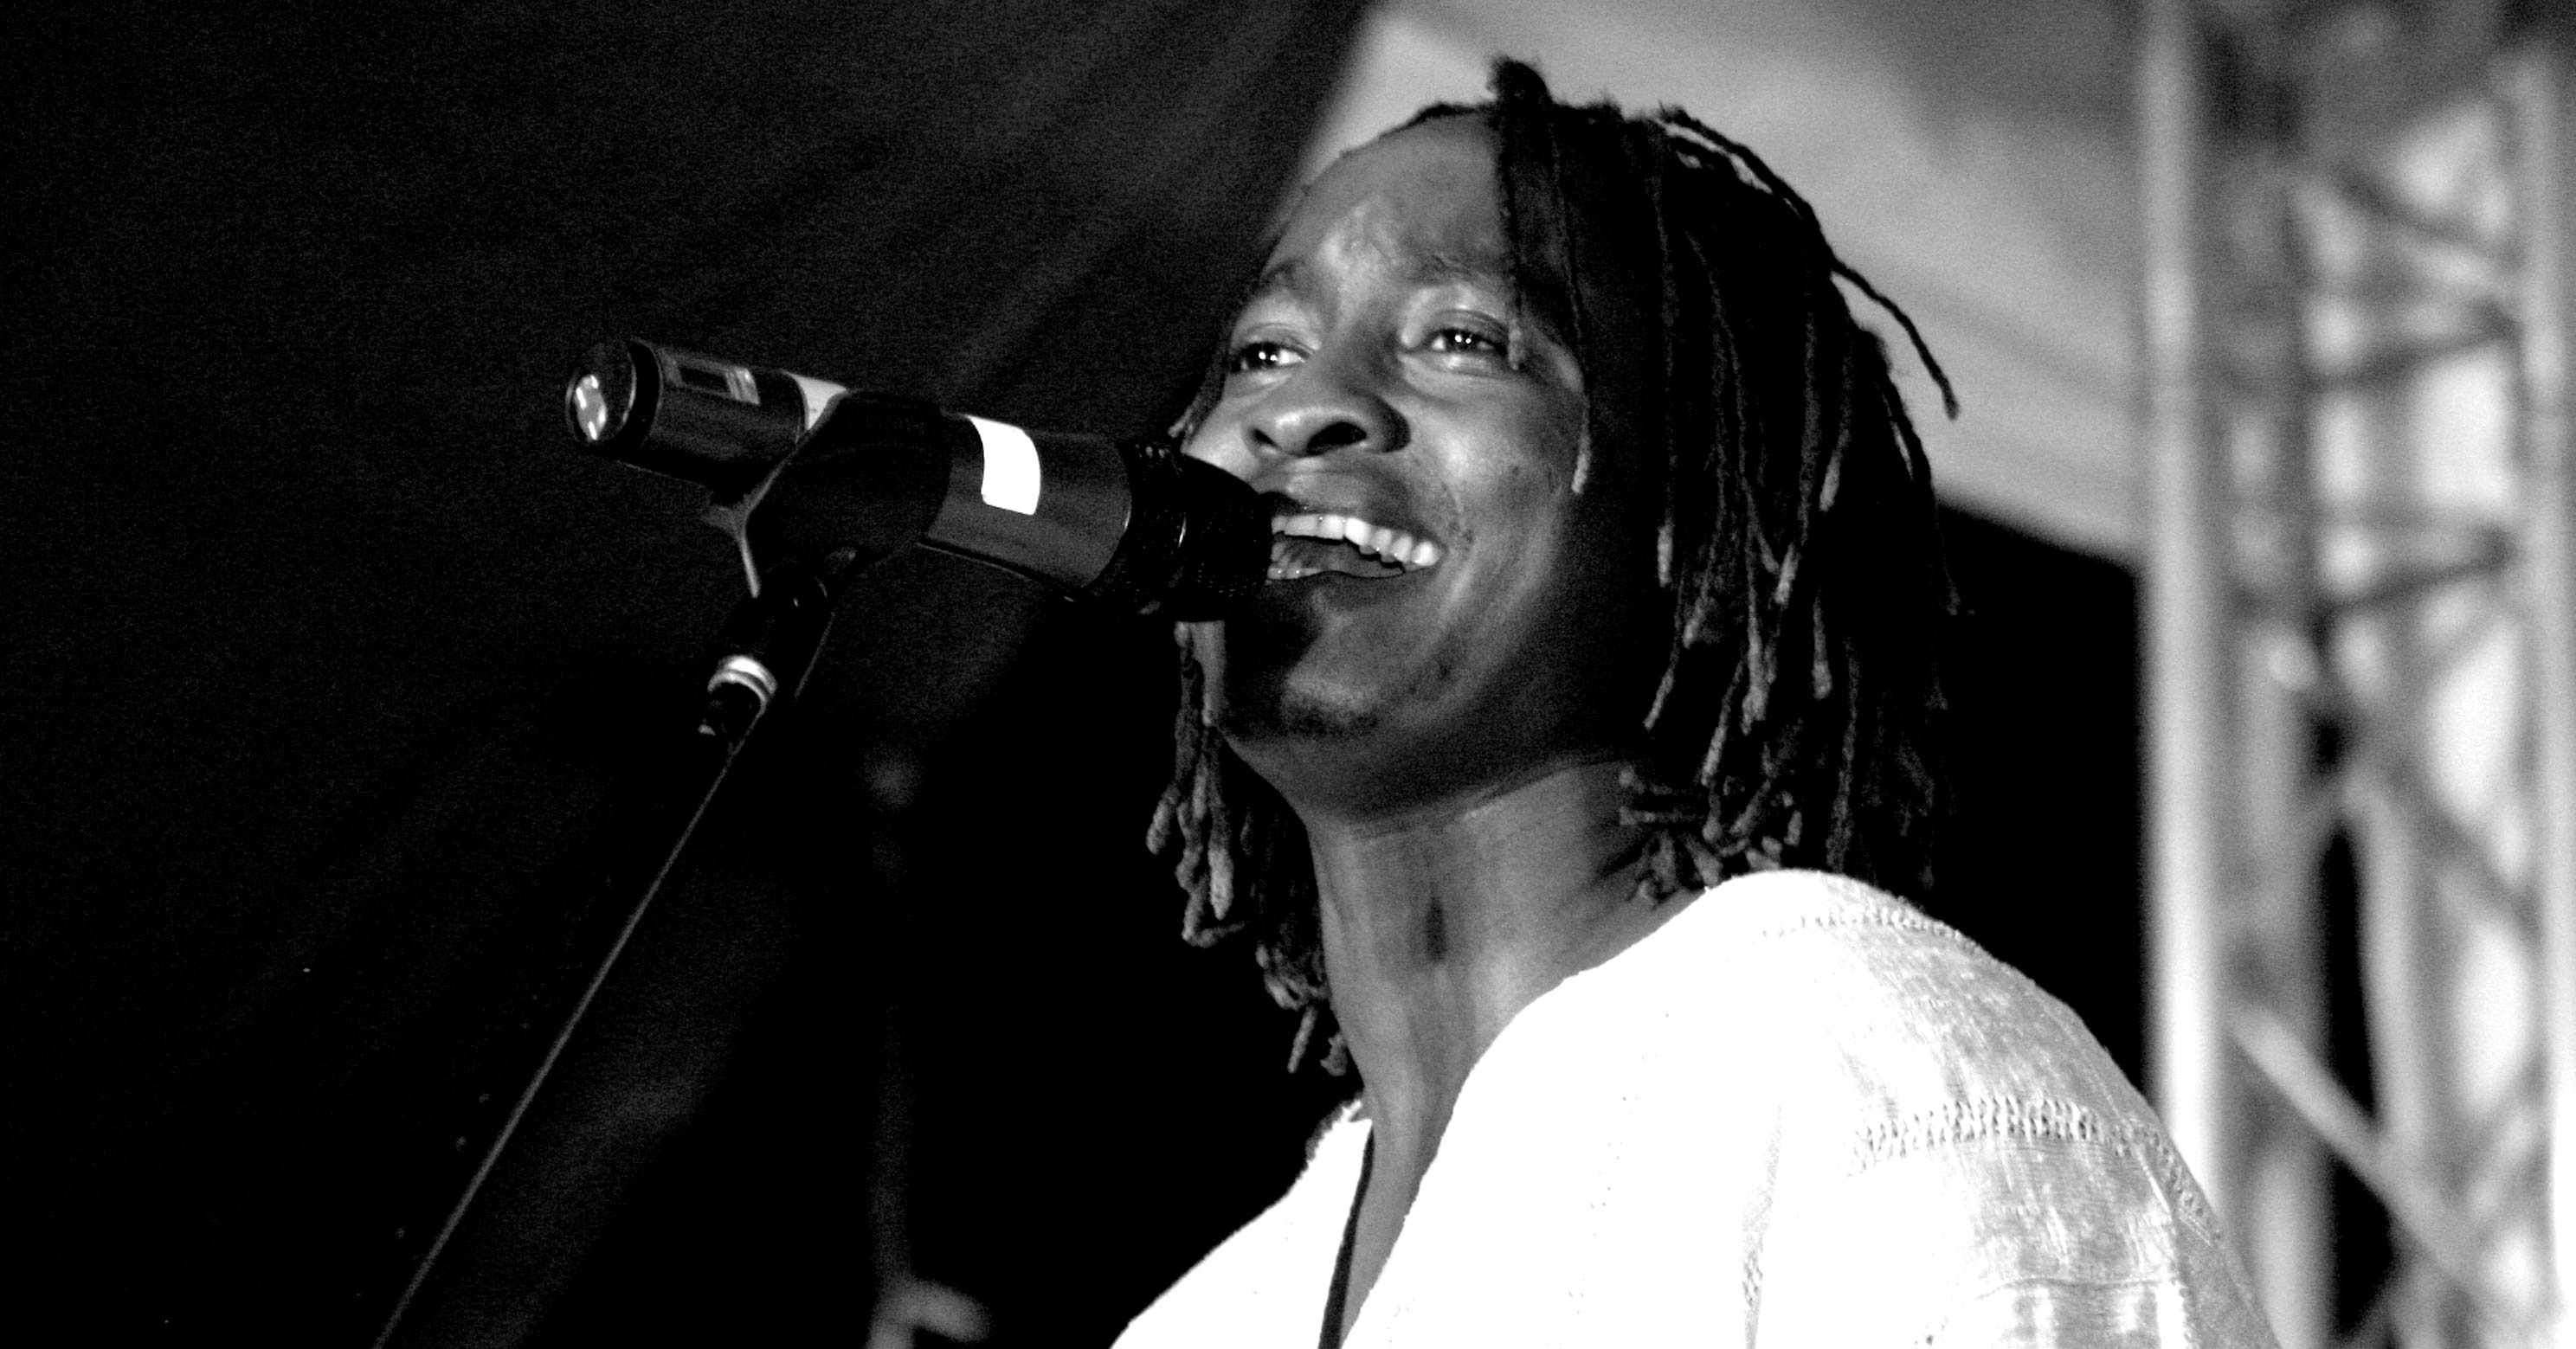 Eric Wainaina - Photography by metta metta ART